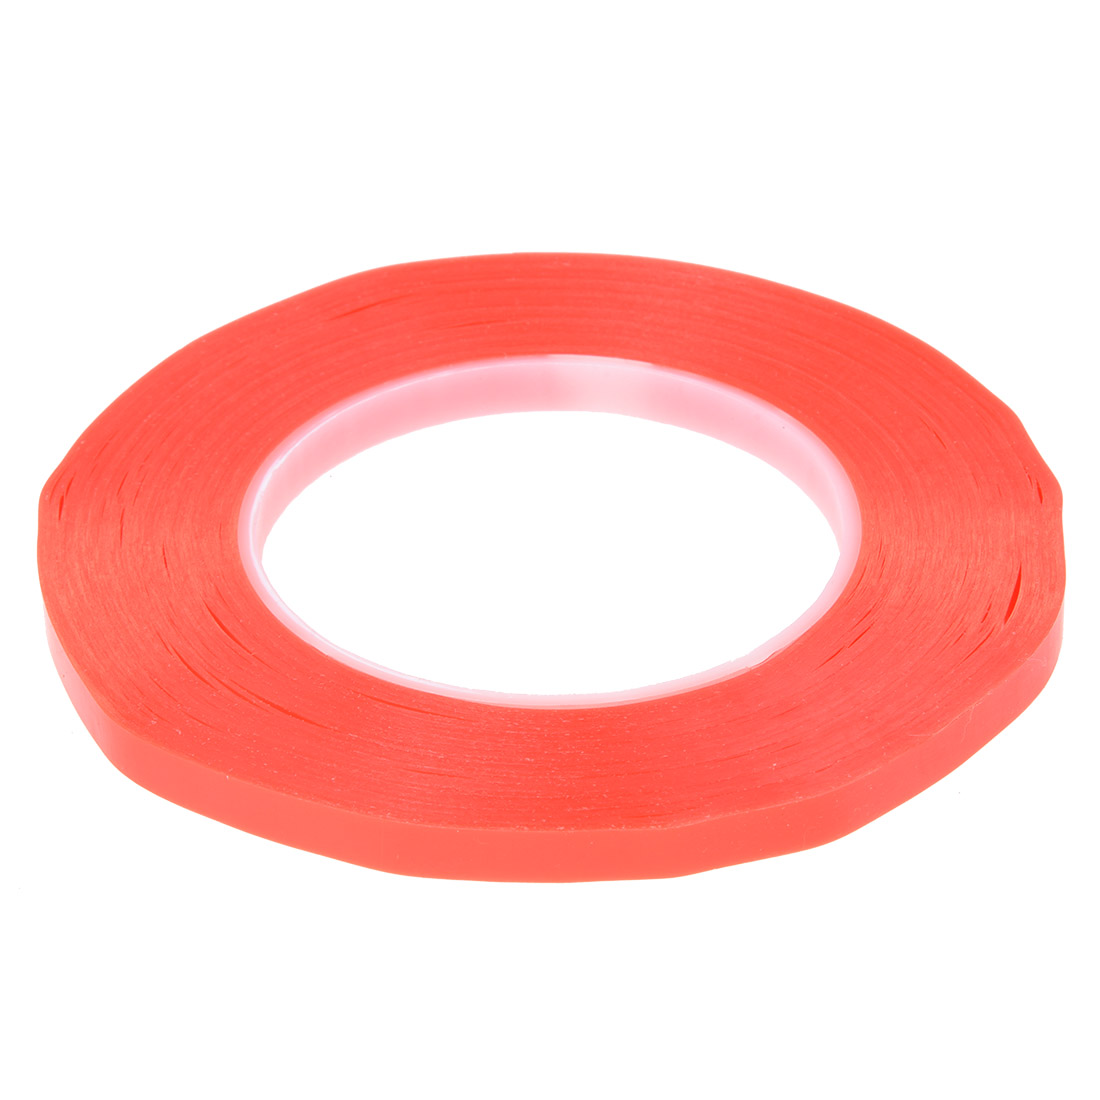 Double-sided duct tape 50M heat resistance tape Mounting tape Width:12mm 10m super strong waterproof self adhesive double sided foam tape for car trim scotch